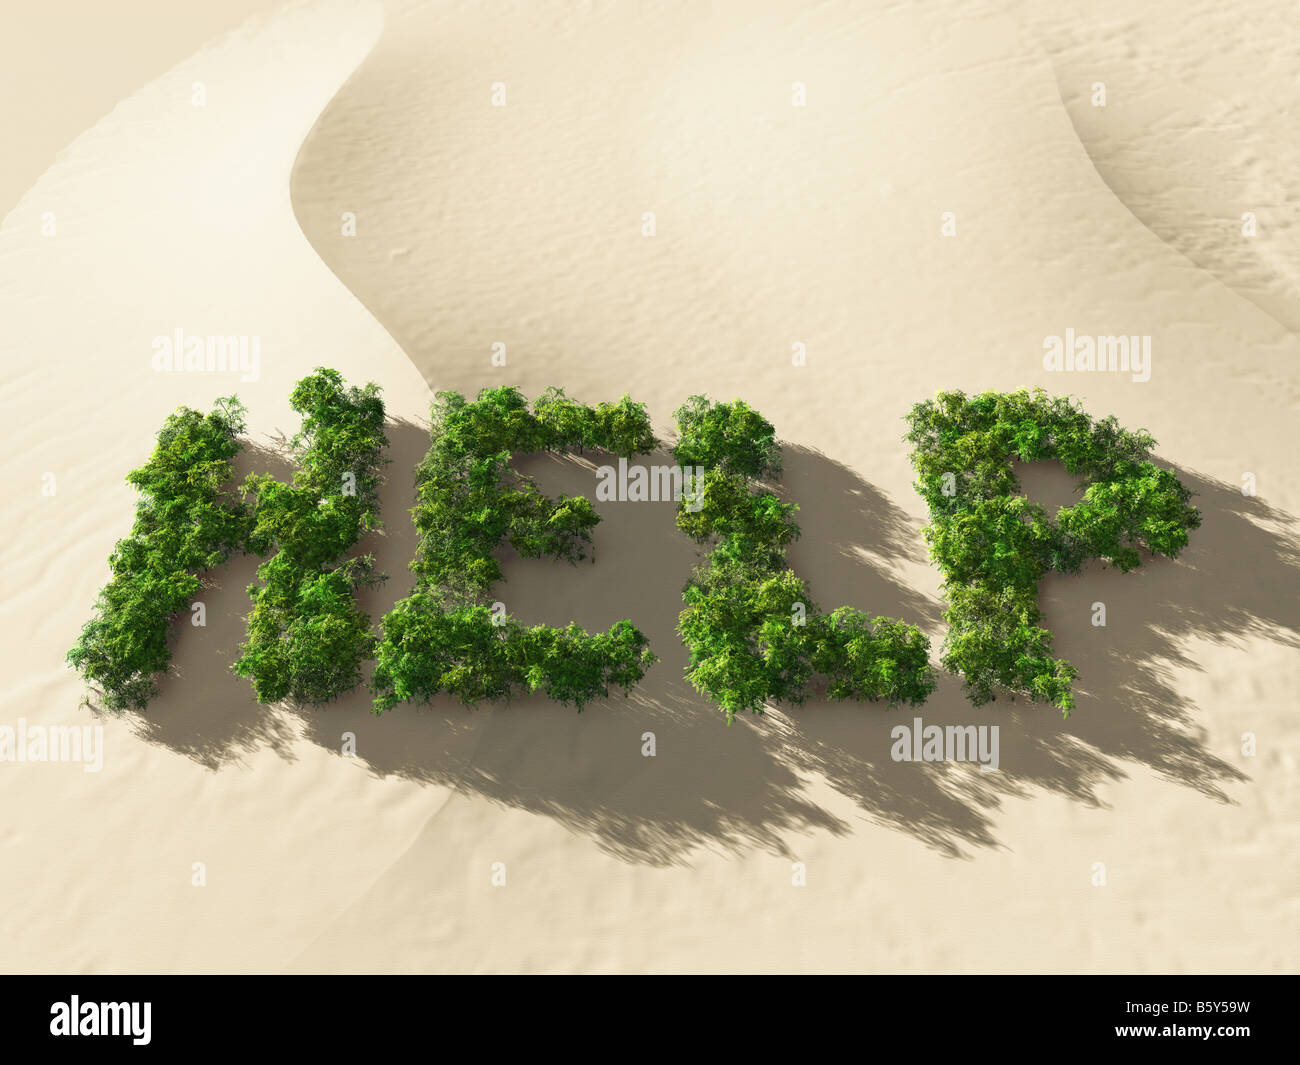 ecological disaster, help wod on sand-dune - Stock Image